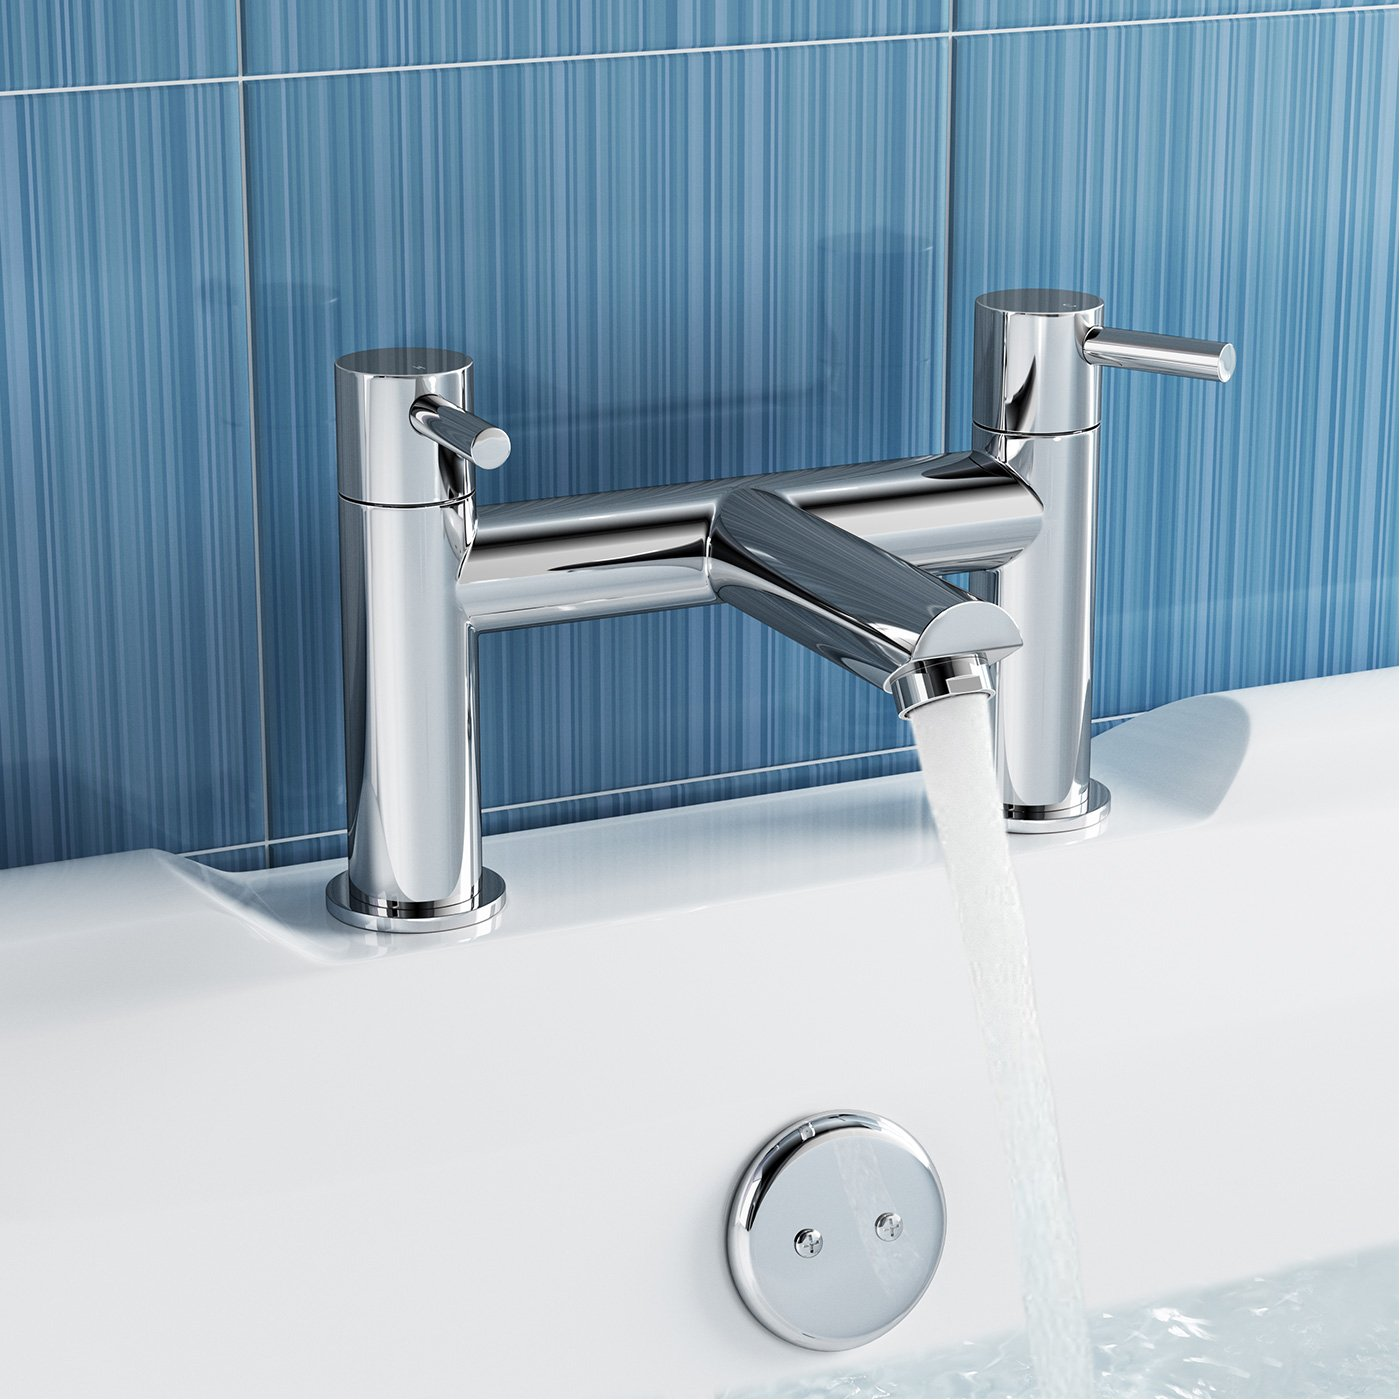 iBathUK Modern Chrome Bath Filler Mixer Tap Designer Bathroom Tub ...